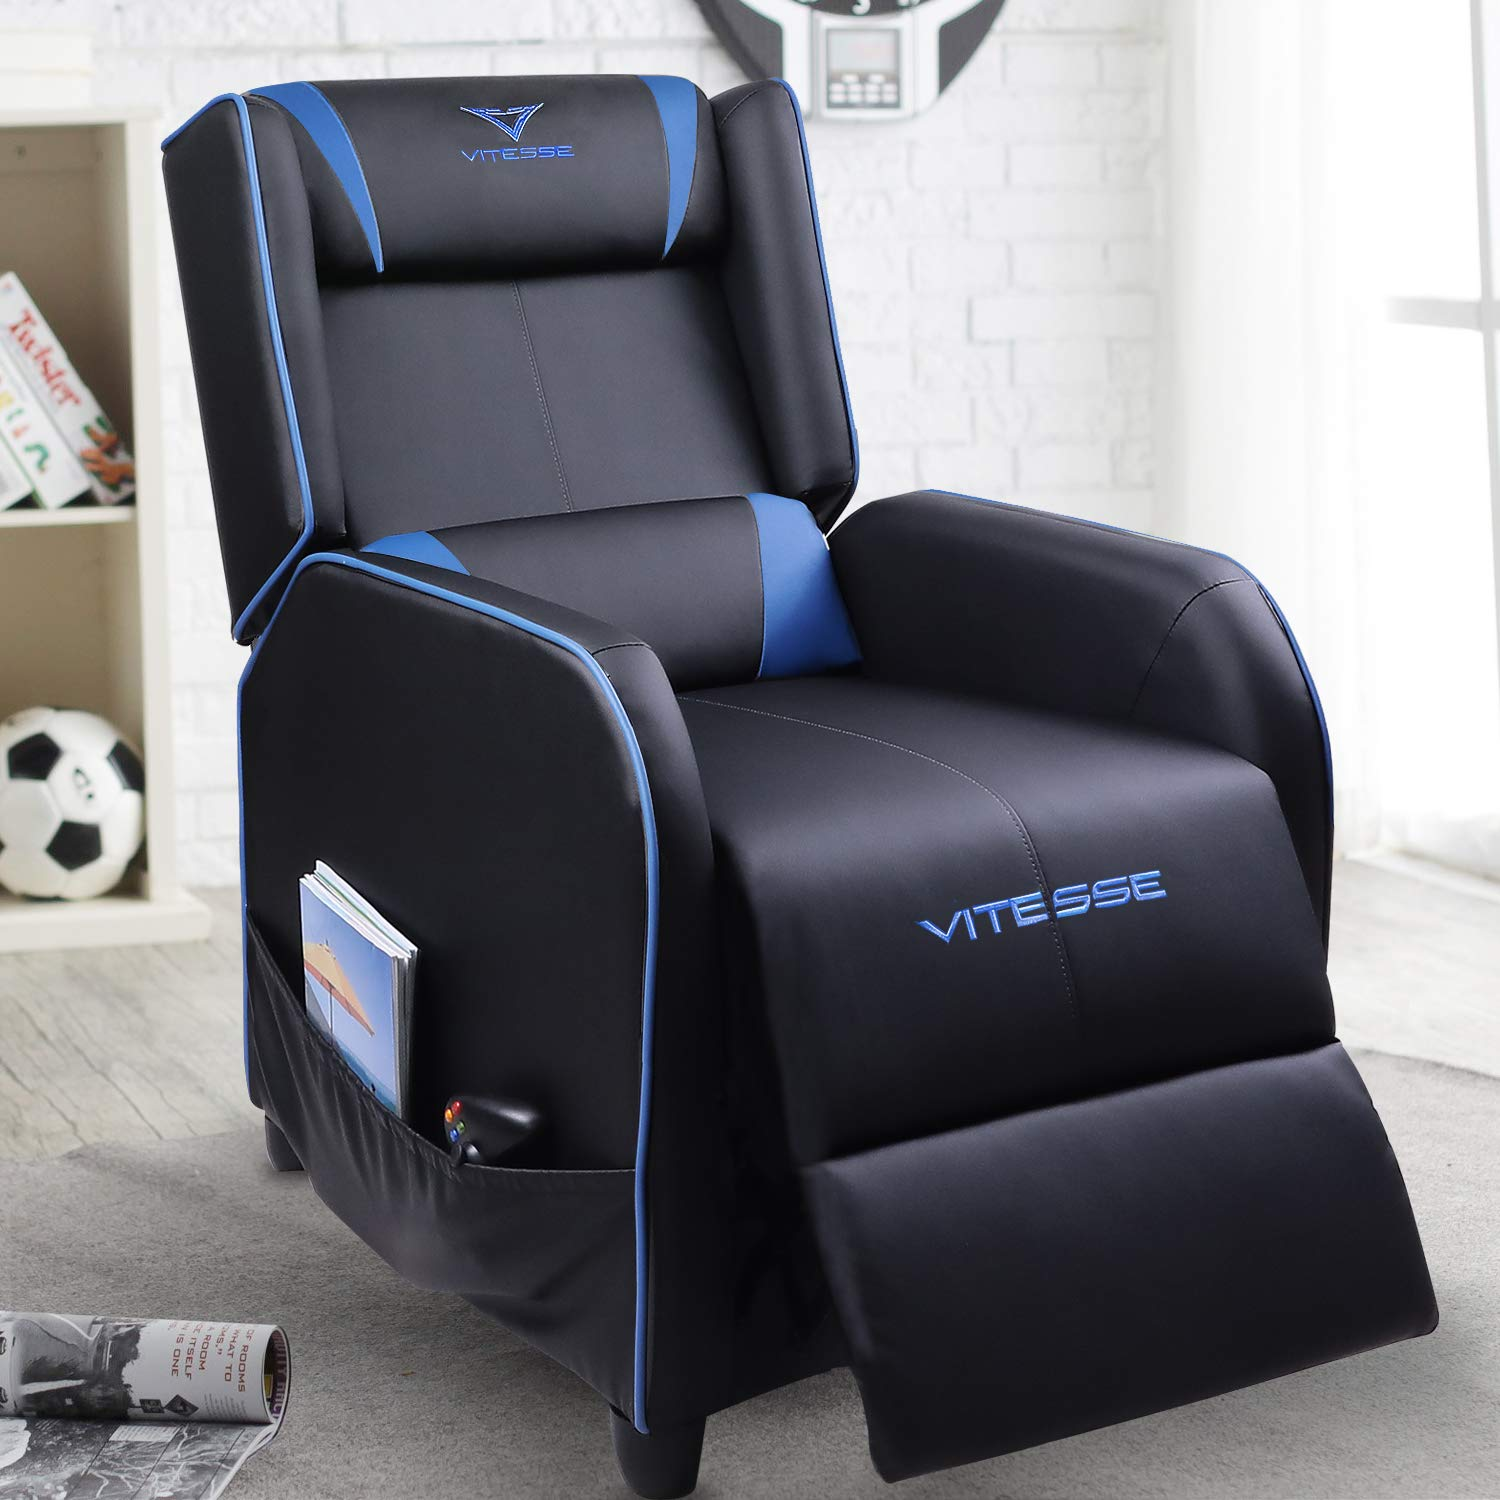 VIT Gaming Recliner Chair Racing Style Single PU Leather Sofa Modern Living Room Recliners Ergonomic Comfortable Home Theater Seating (Blue) by Vitesse